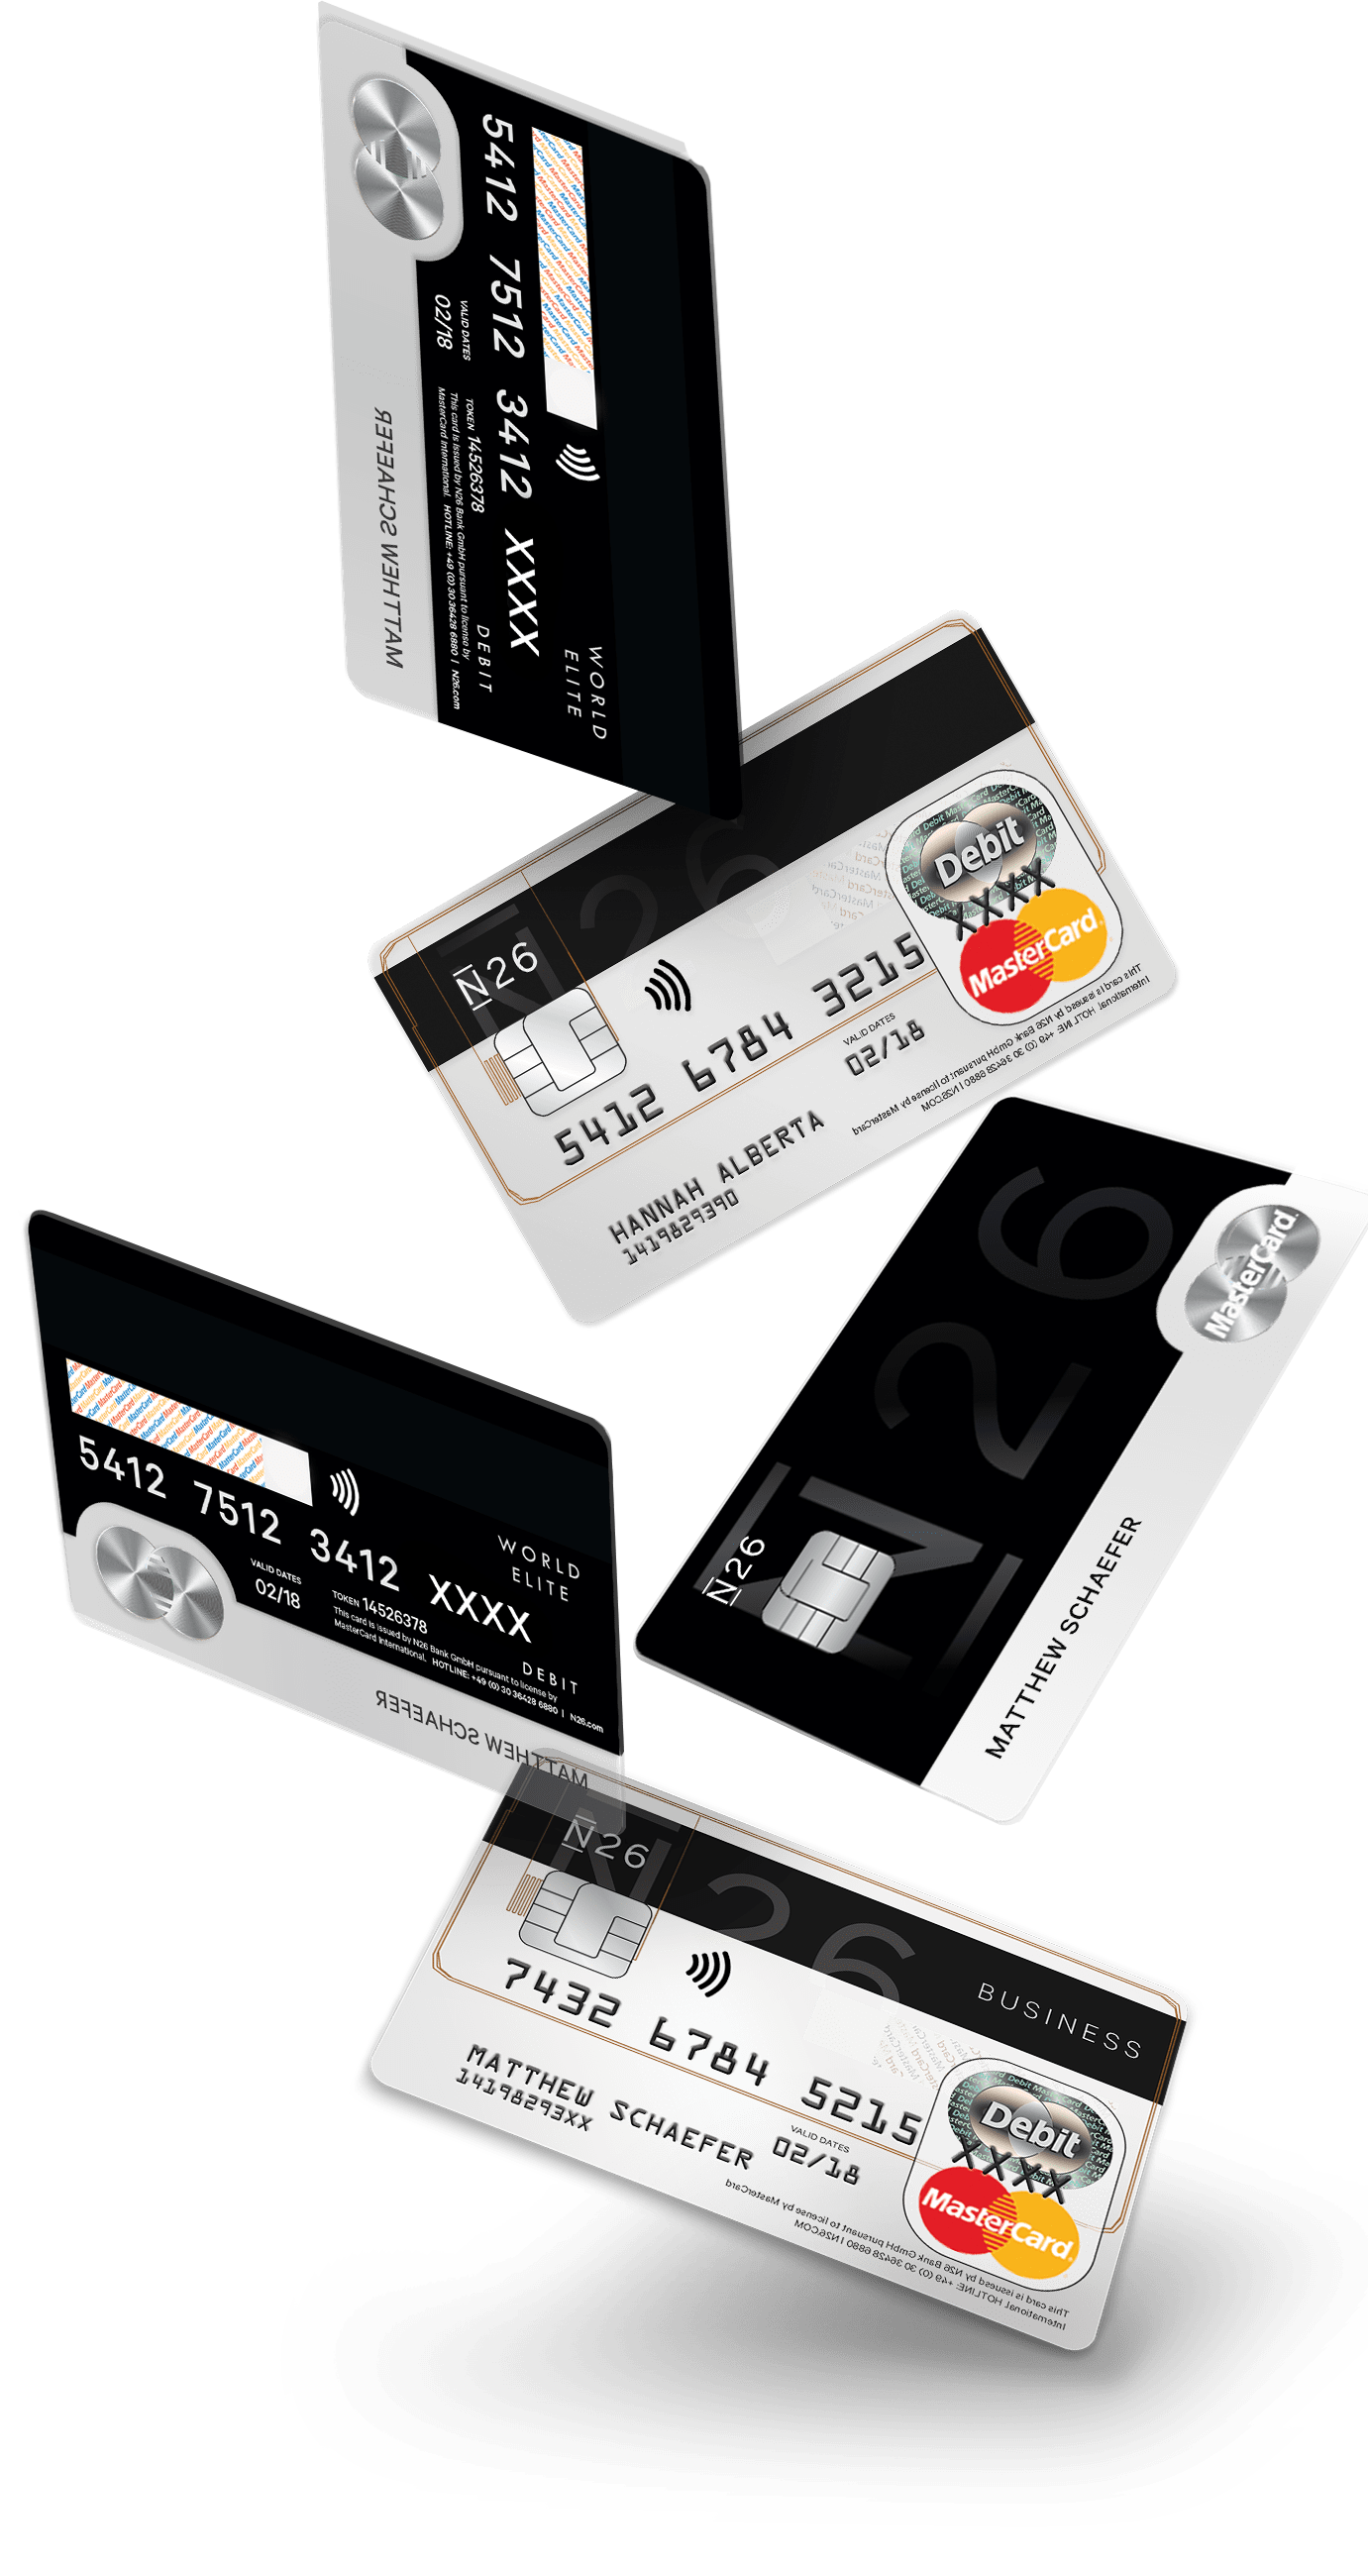 Carte Bleue Sans Relief.N26 Black Metal Une Jolie Carte Bancaire Metallique Mais A Quoi